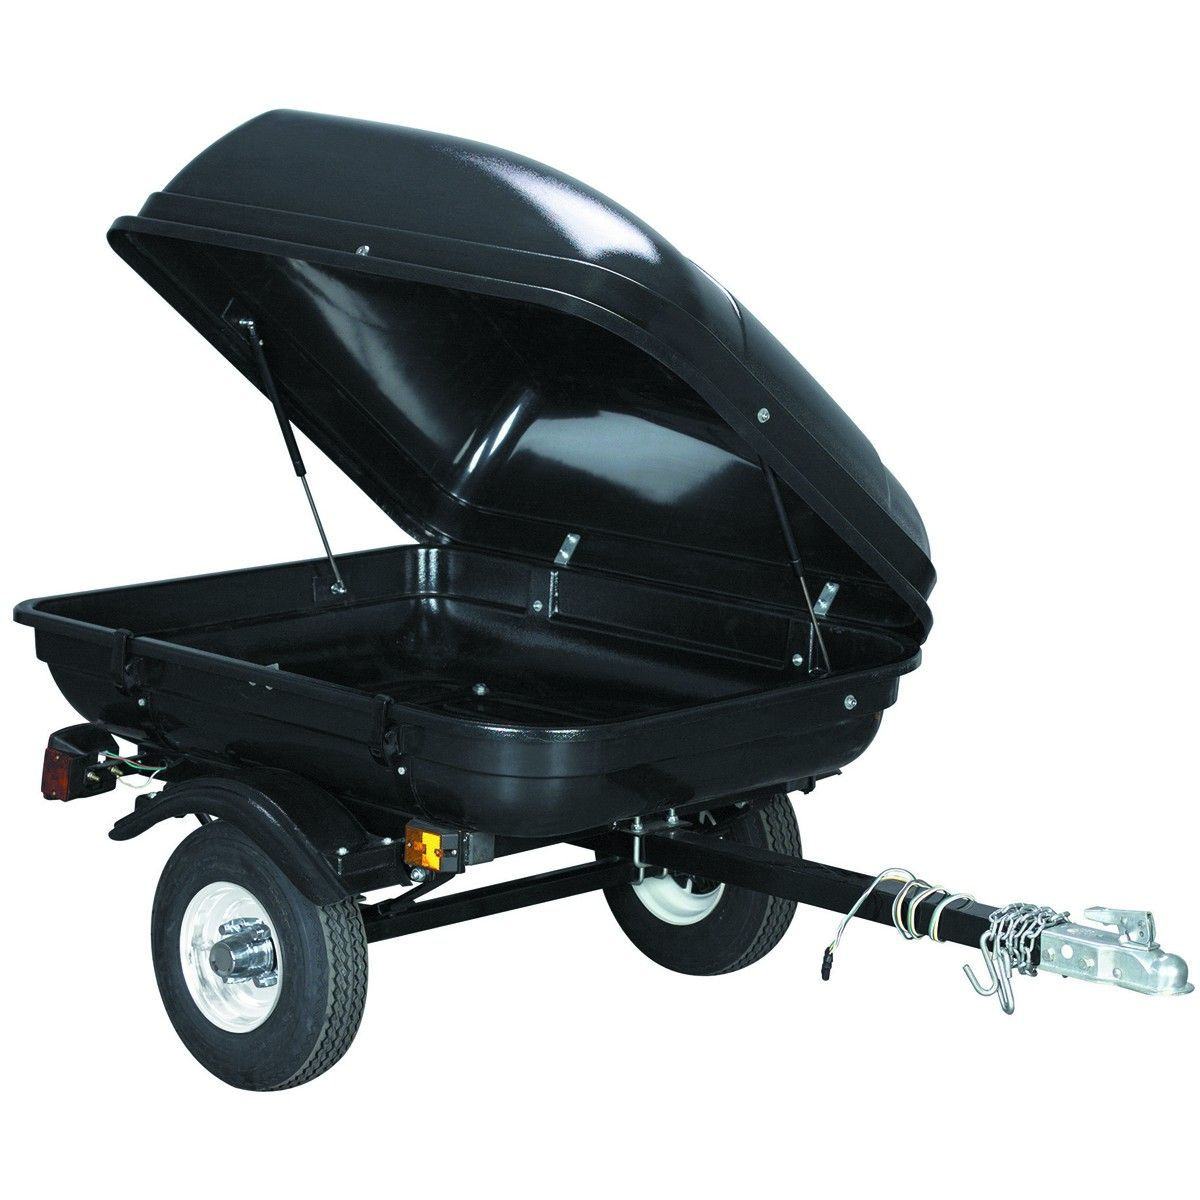 Harbor Freight Tag Along Trailer. 399.00 in a kit that